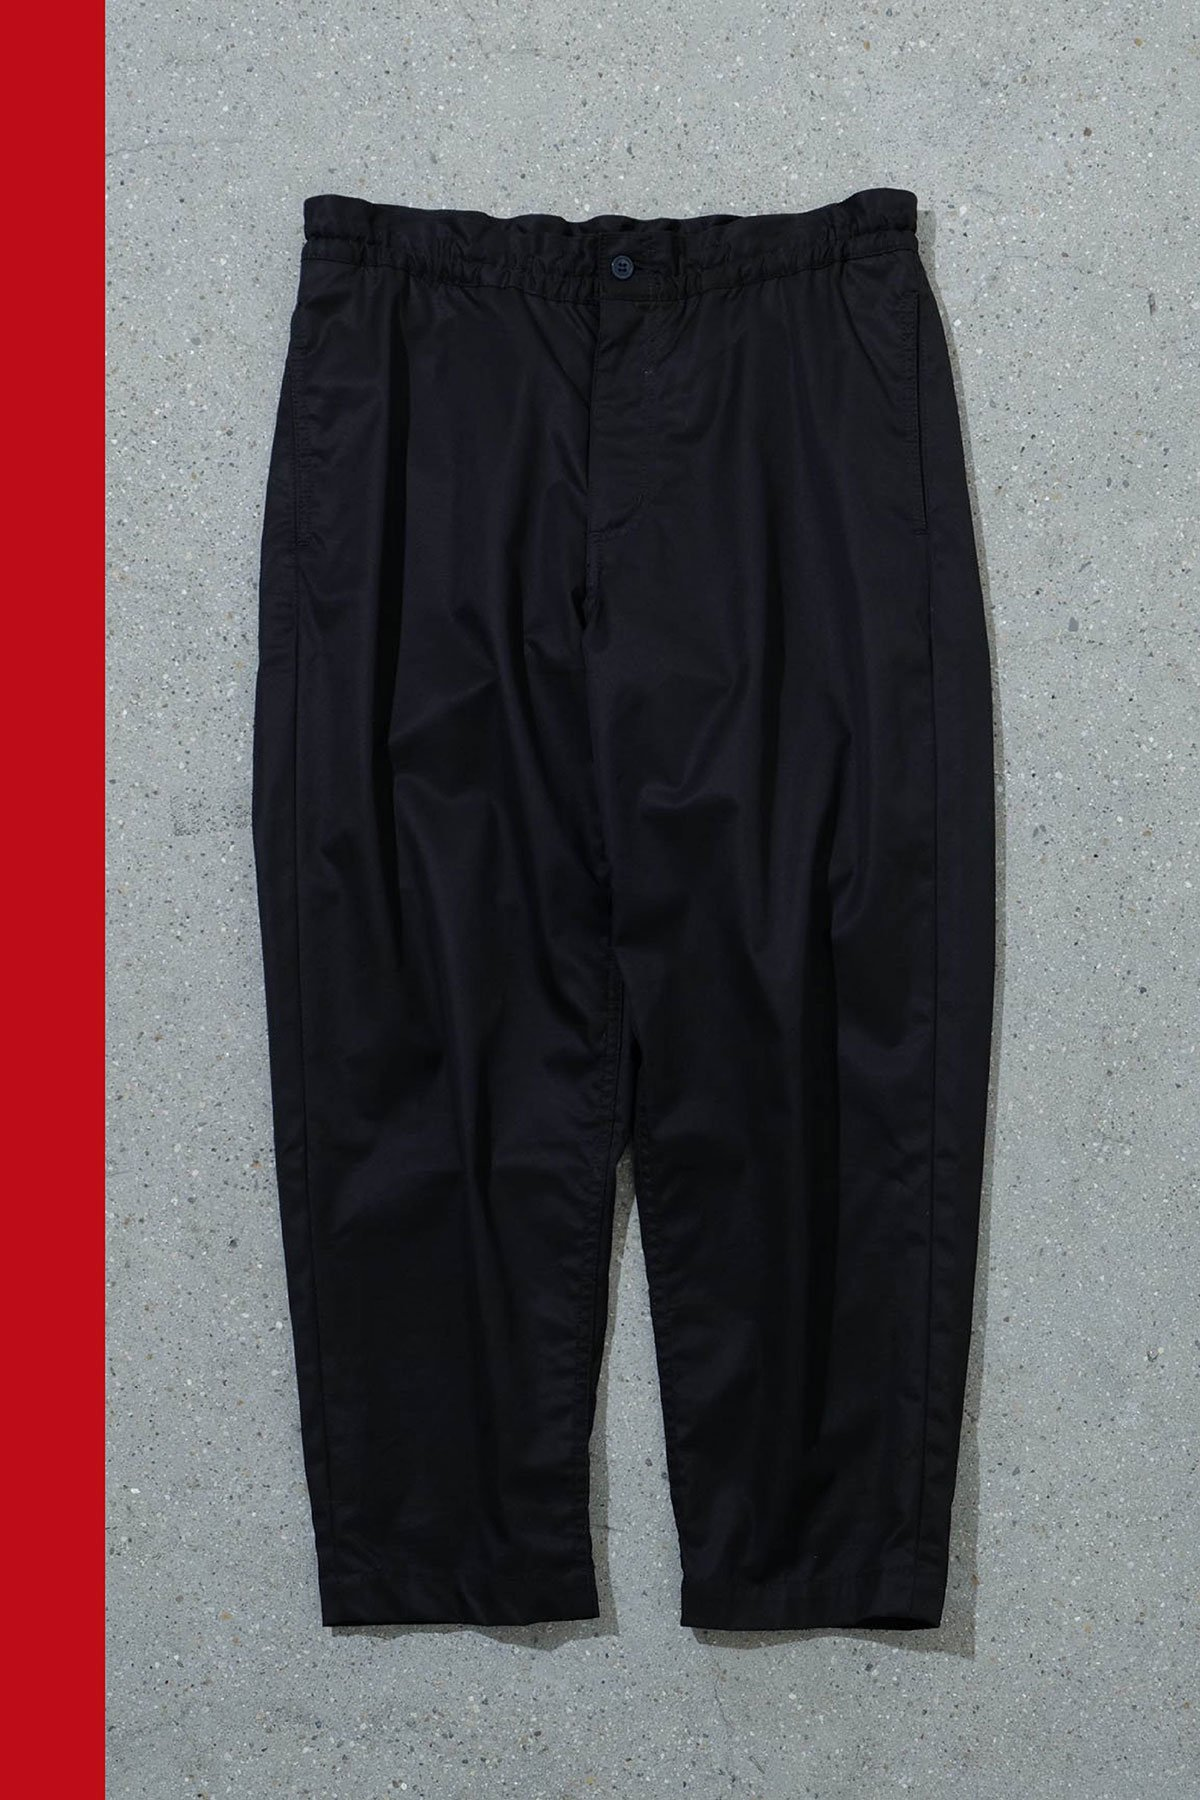 ORIGINAL MADE by IMA:ZINE / EASY PANTS